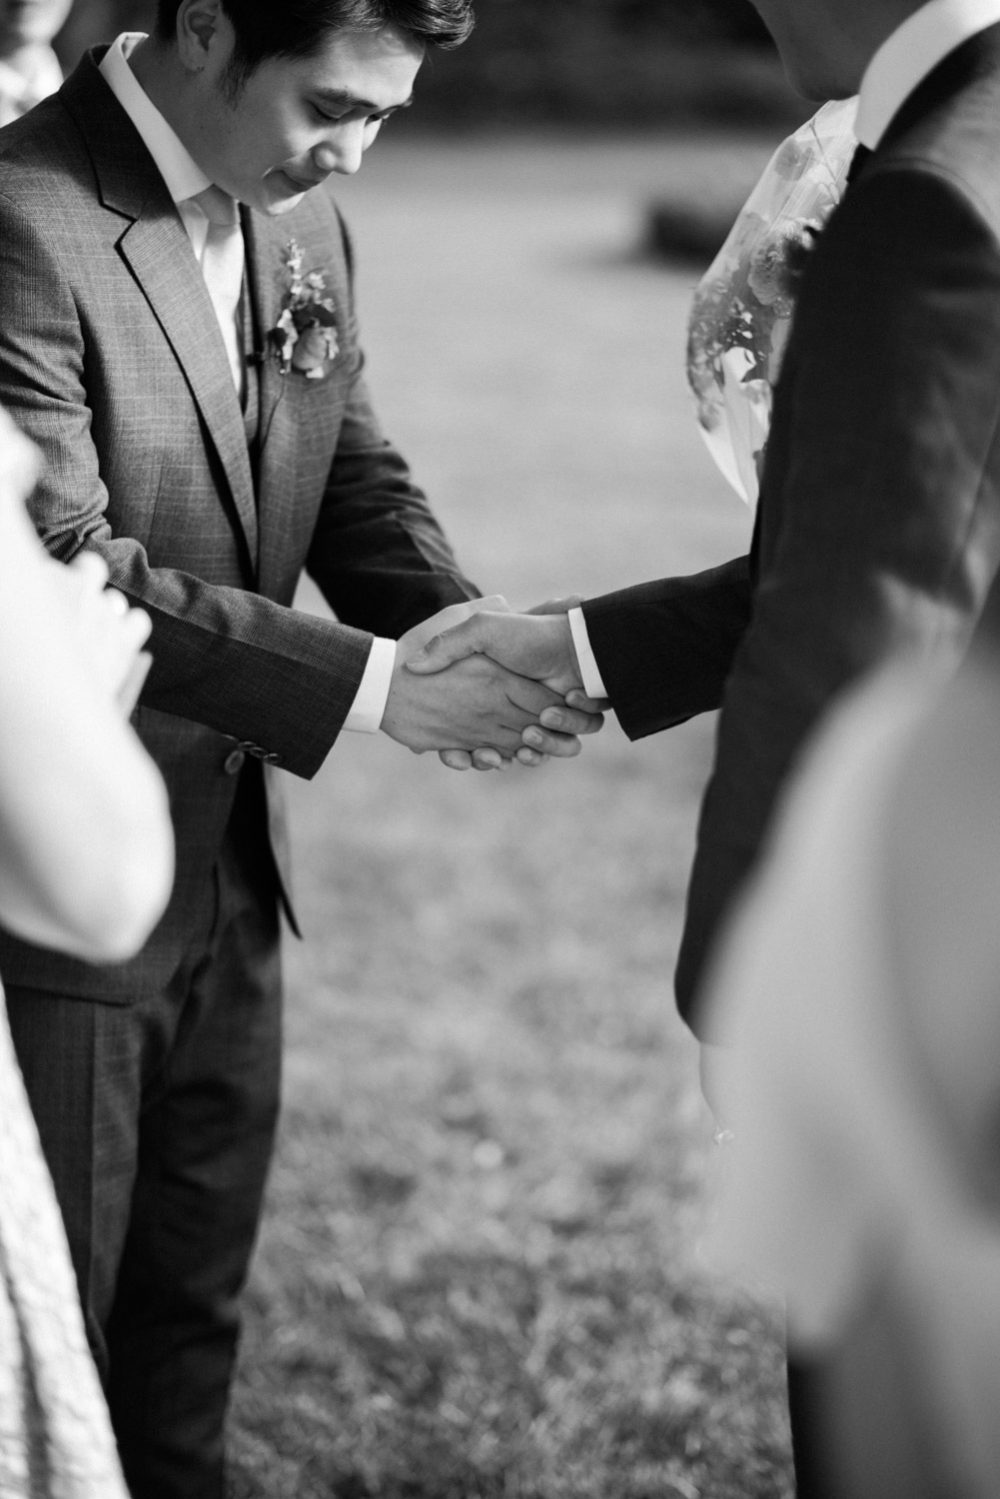 Photo of the groom shaking hands with bride's father during the wedding ceremony